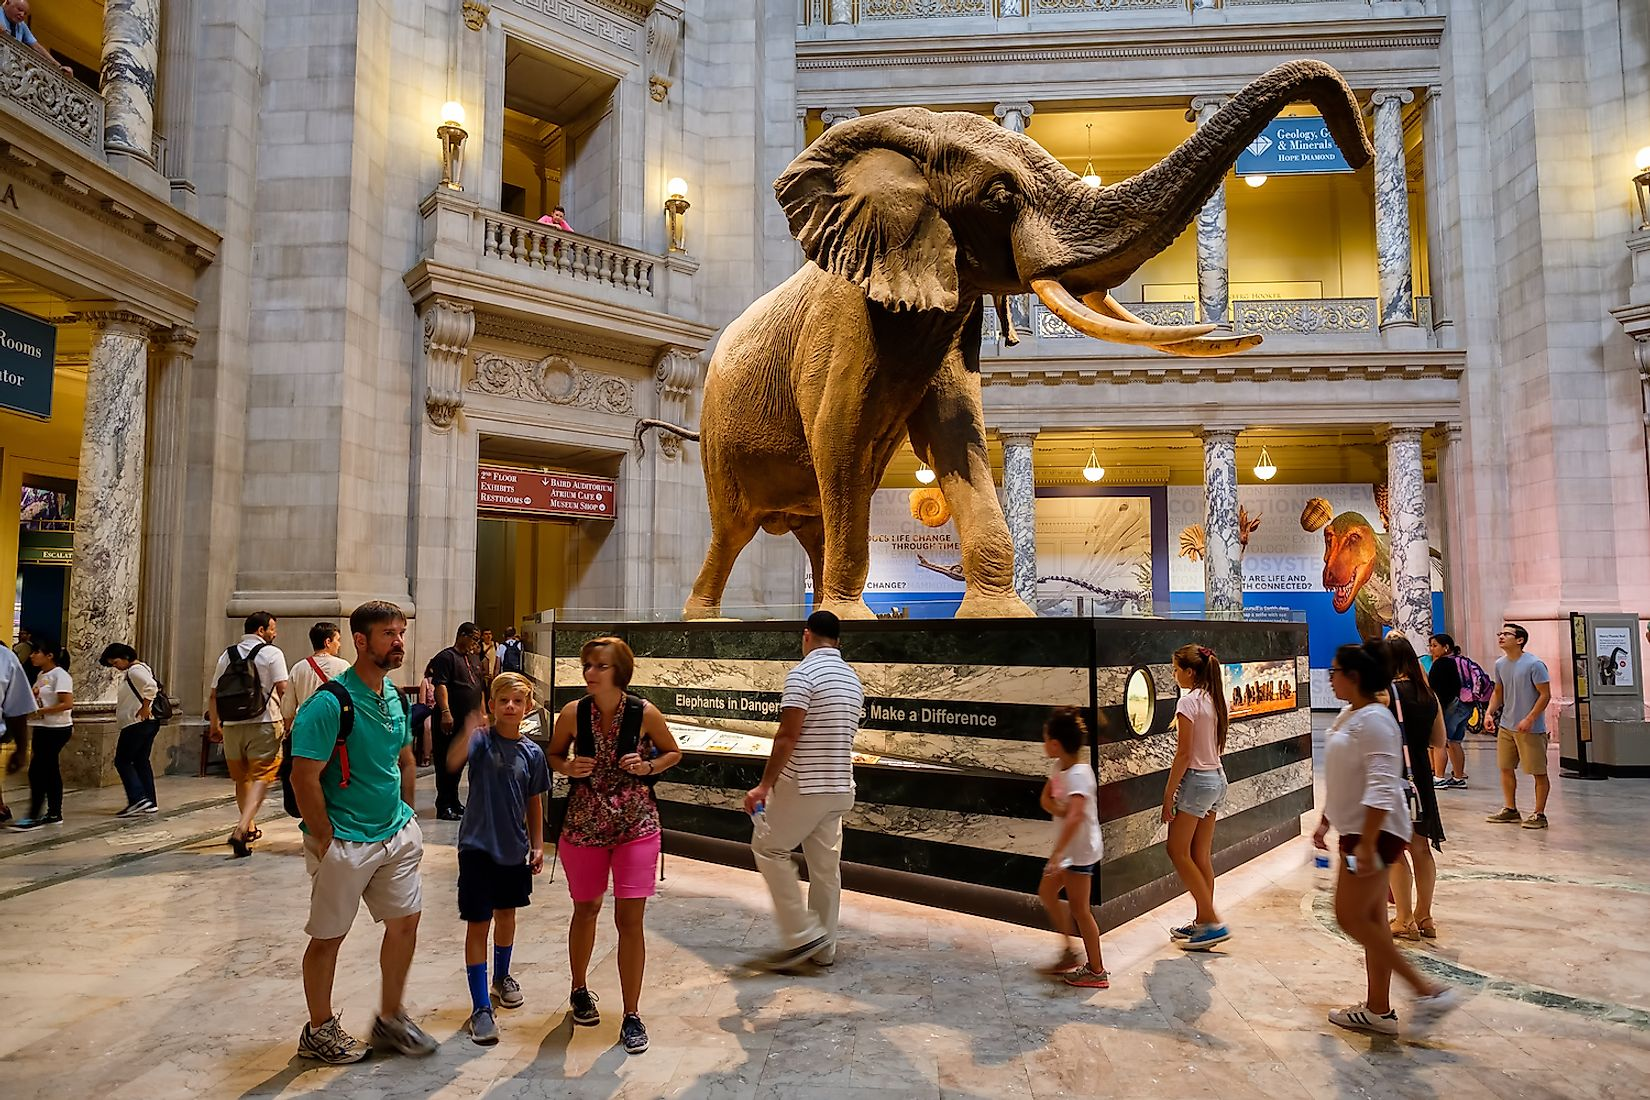 Visitors at the Main Hall of the National Museum of Natural History in Washington D.C. Image credit: Kamira/Shutterstock.com